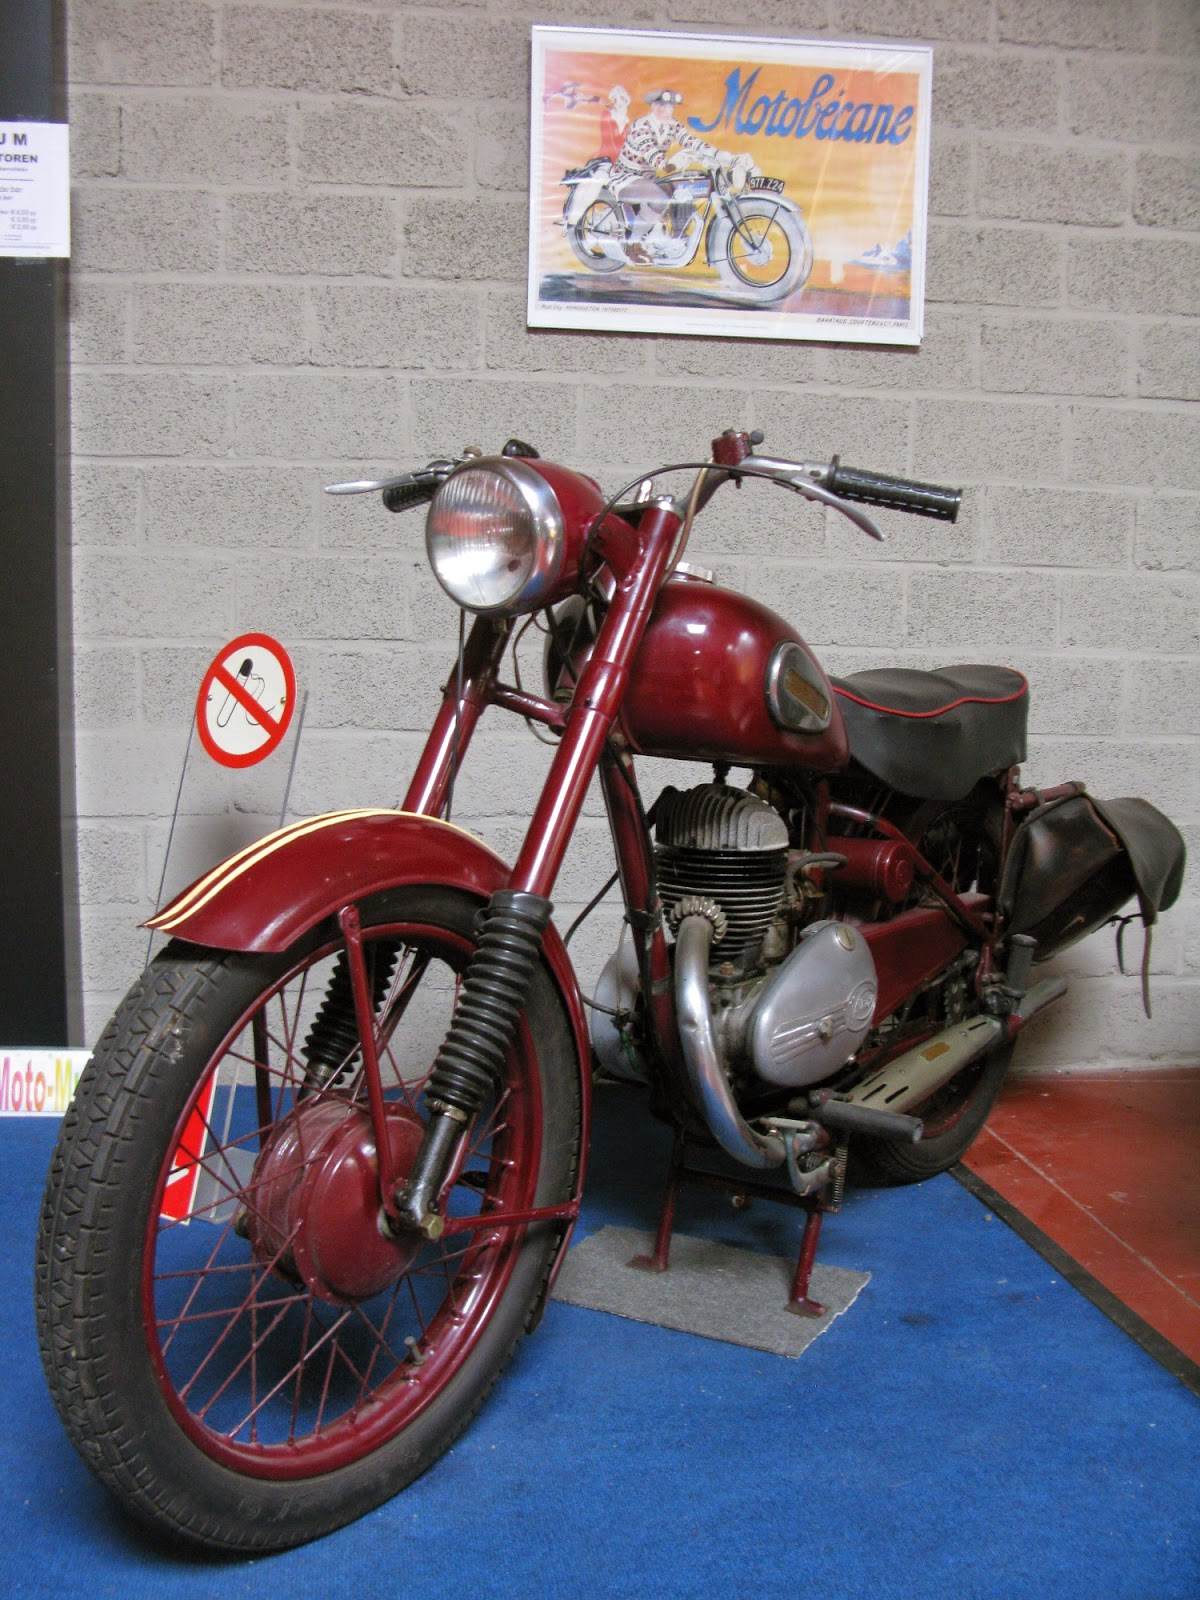 Hulsmann motorcycle with Villiers engine